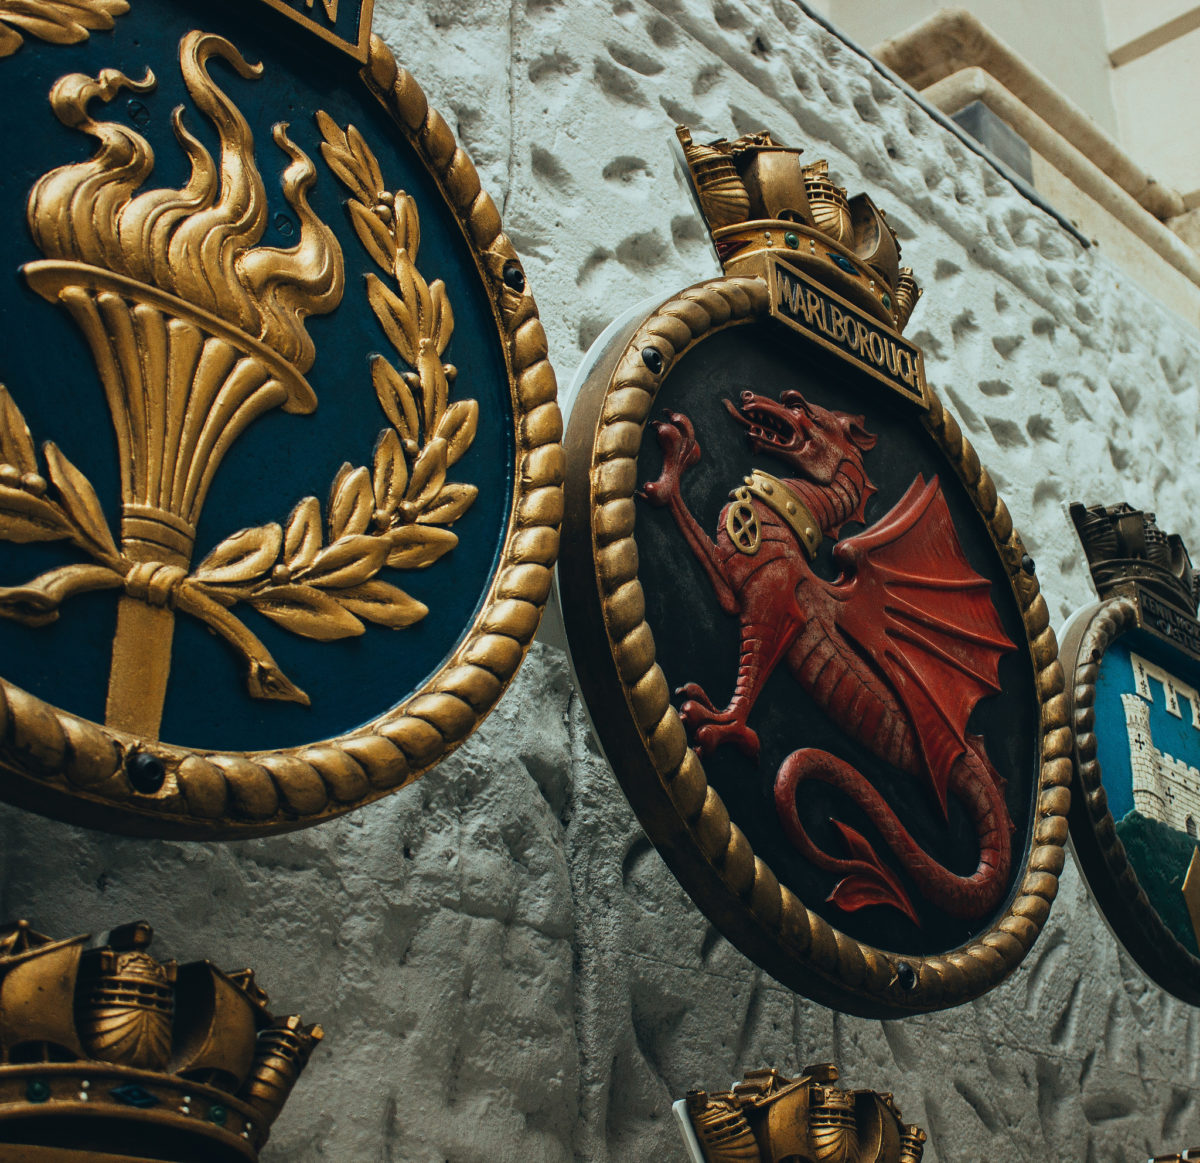 ship badges hanging on wall